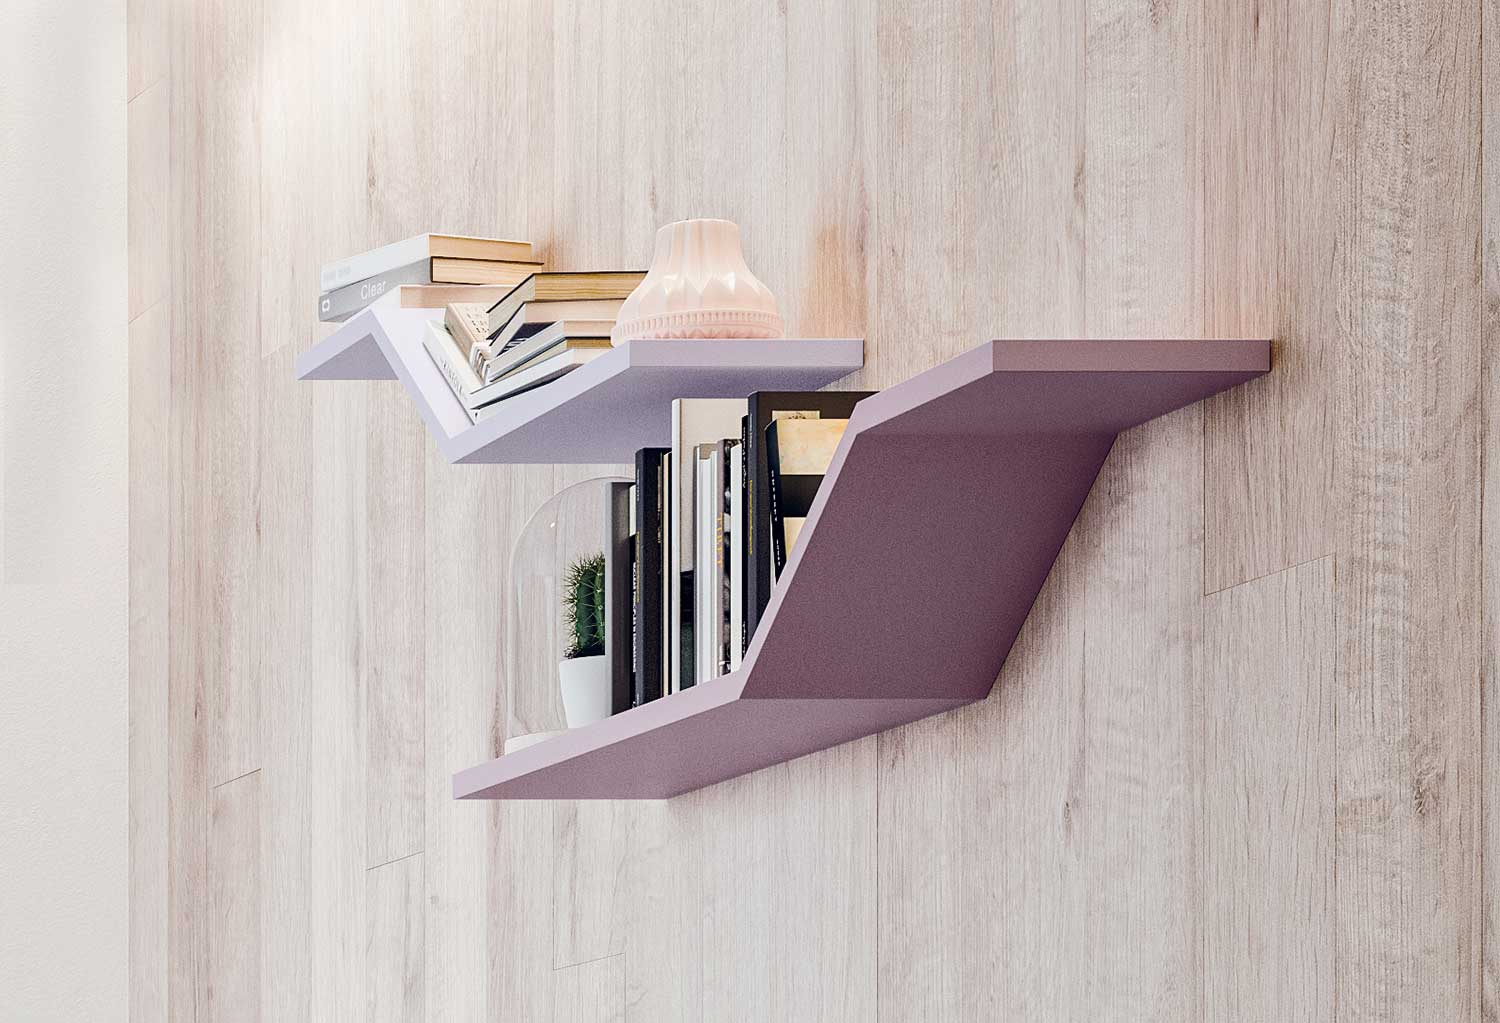 The diagonal surface works as book holder